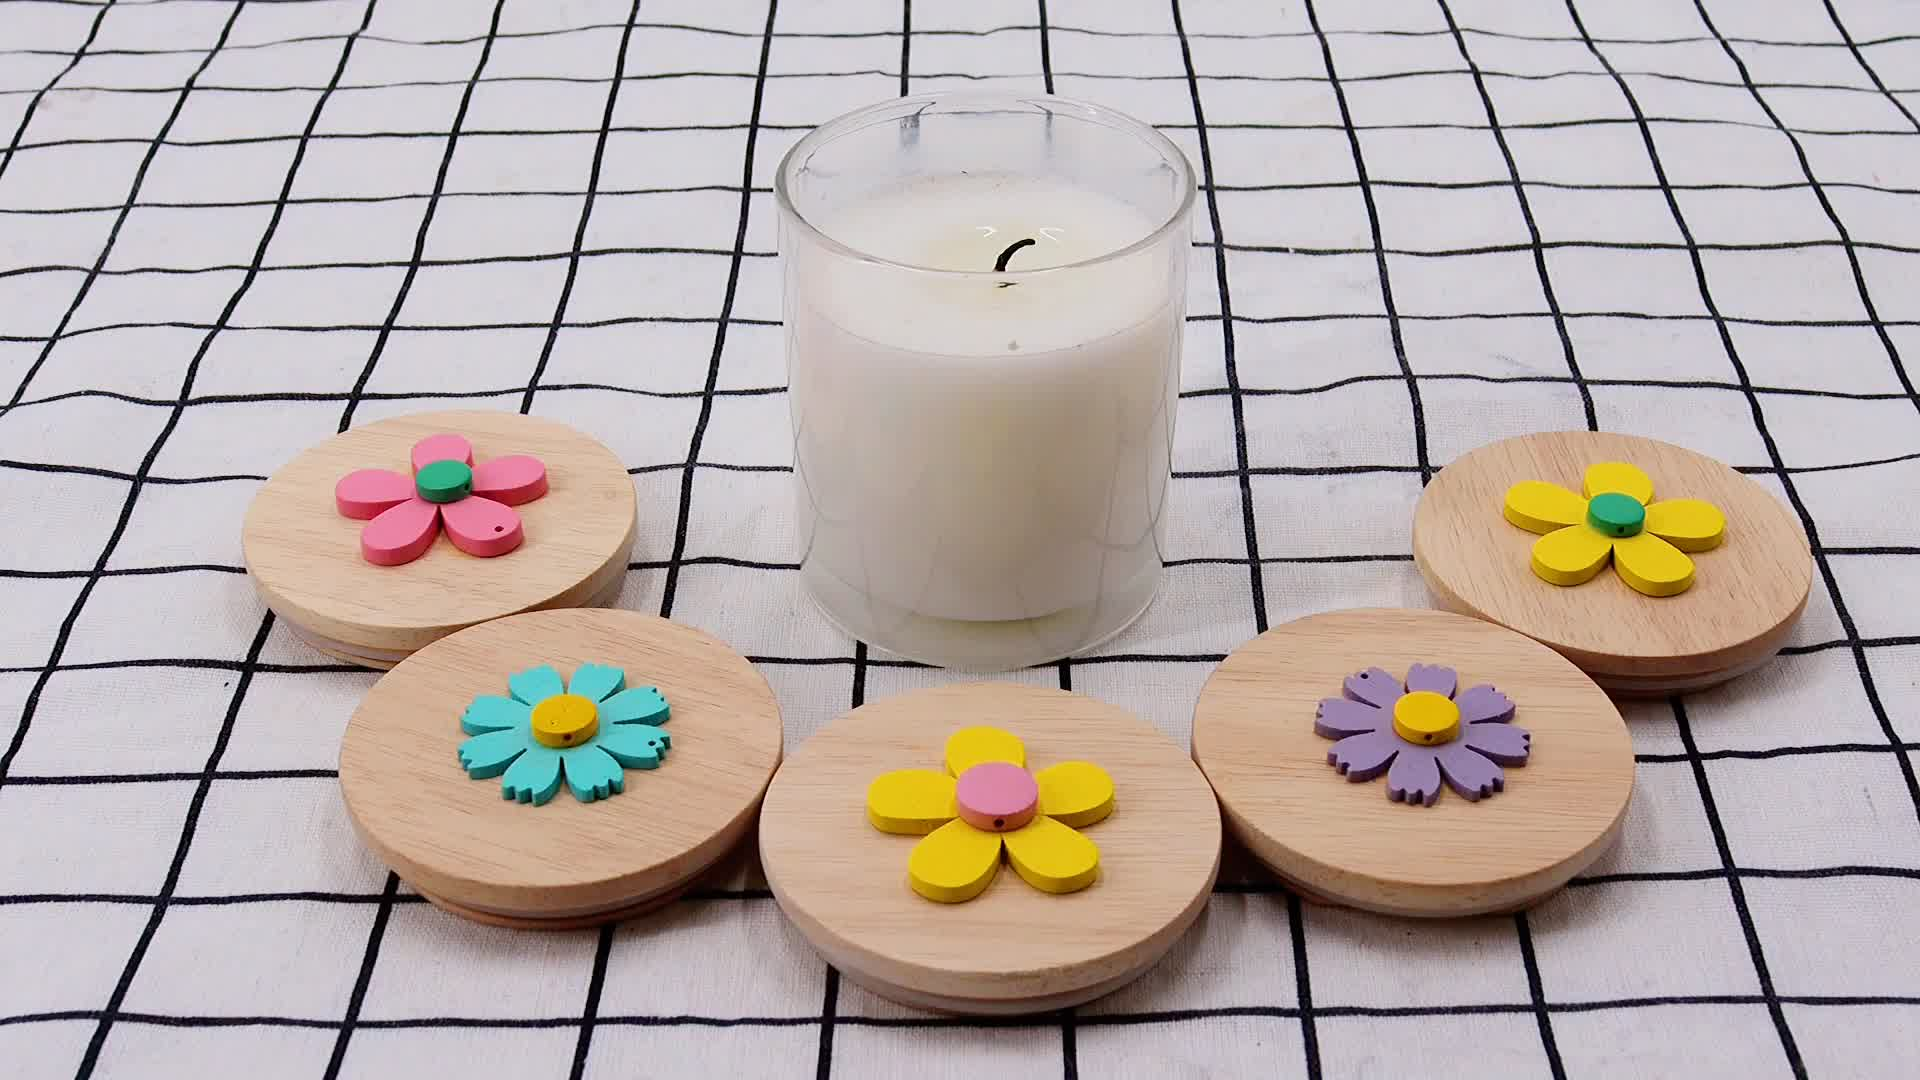 2020 New product customized  different size wooden lid for candle jar round shaped wooden candle cover for glass jars